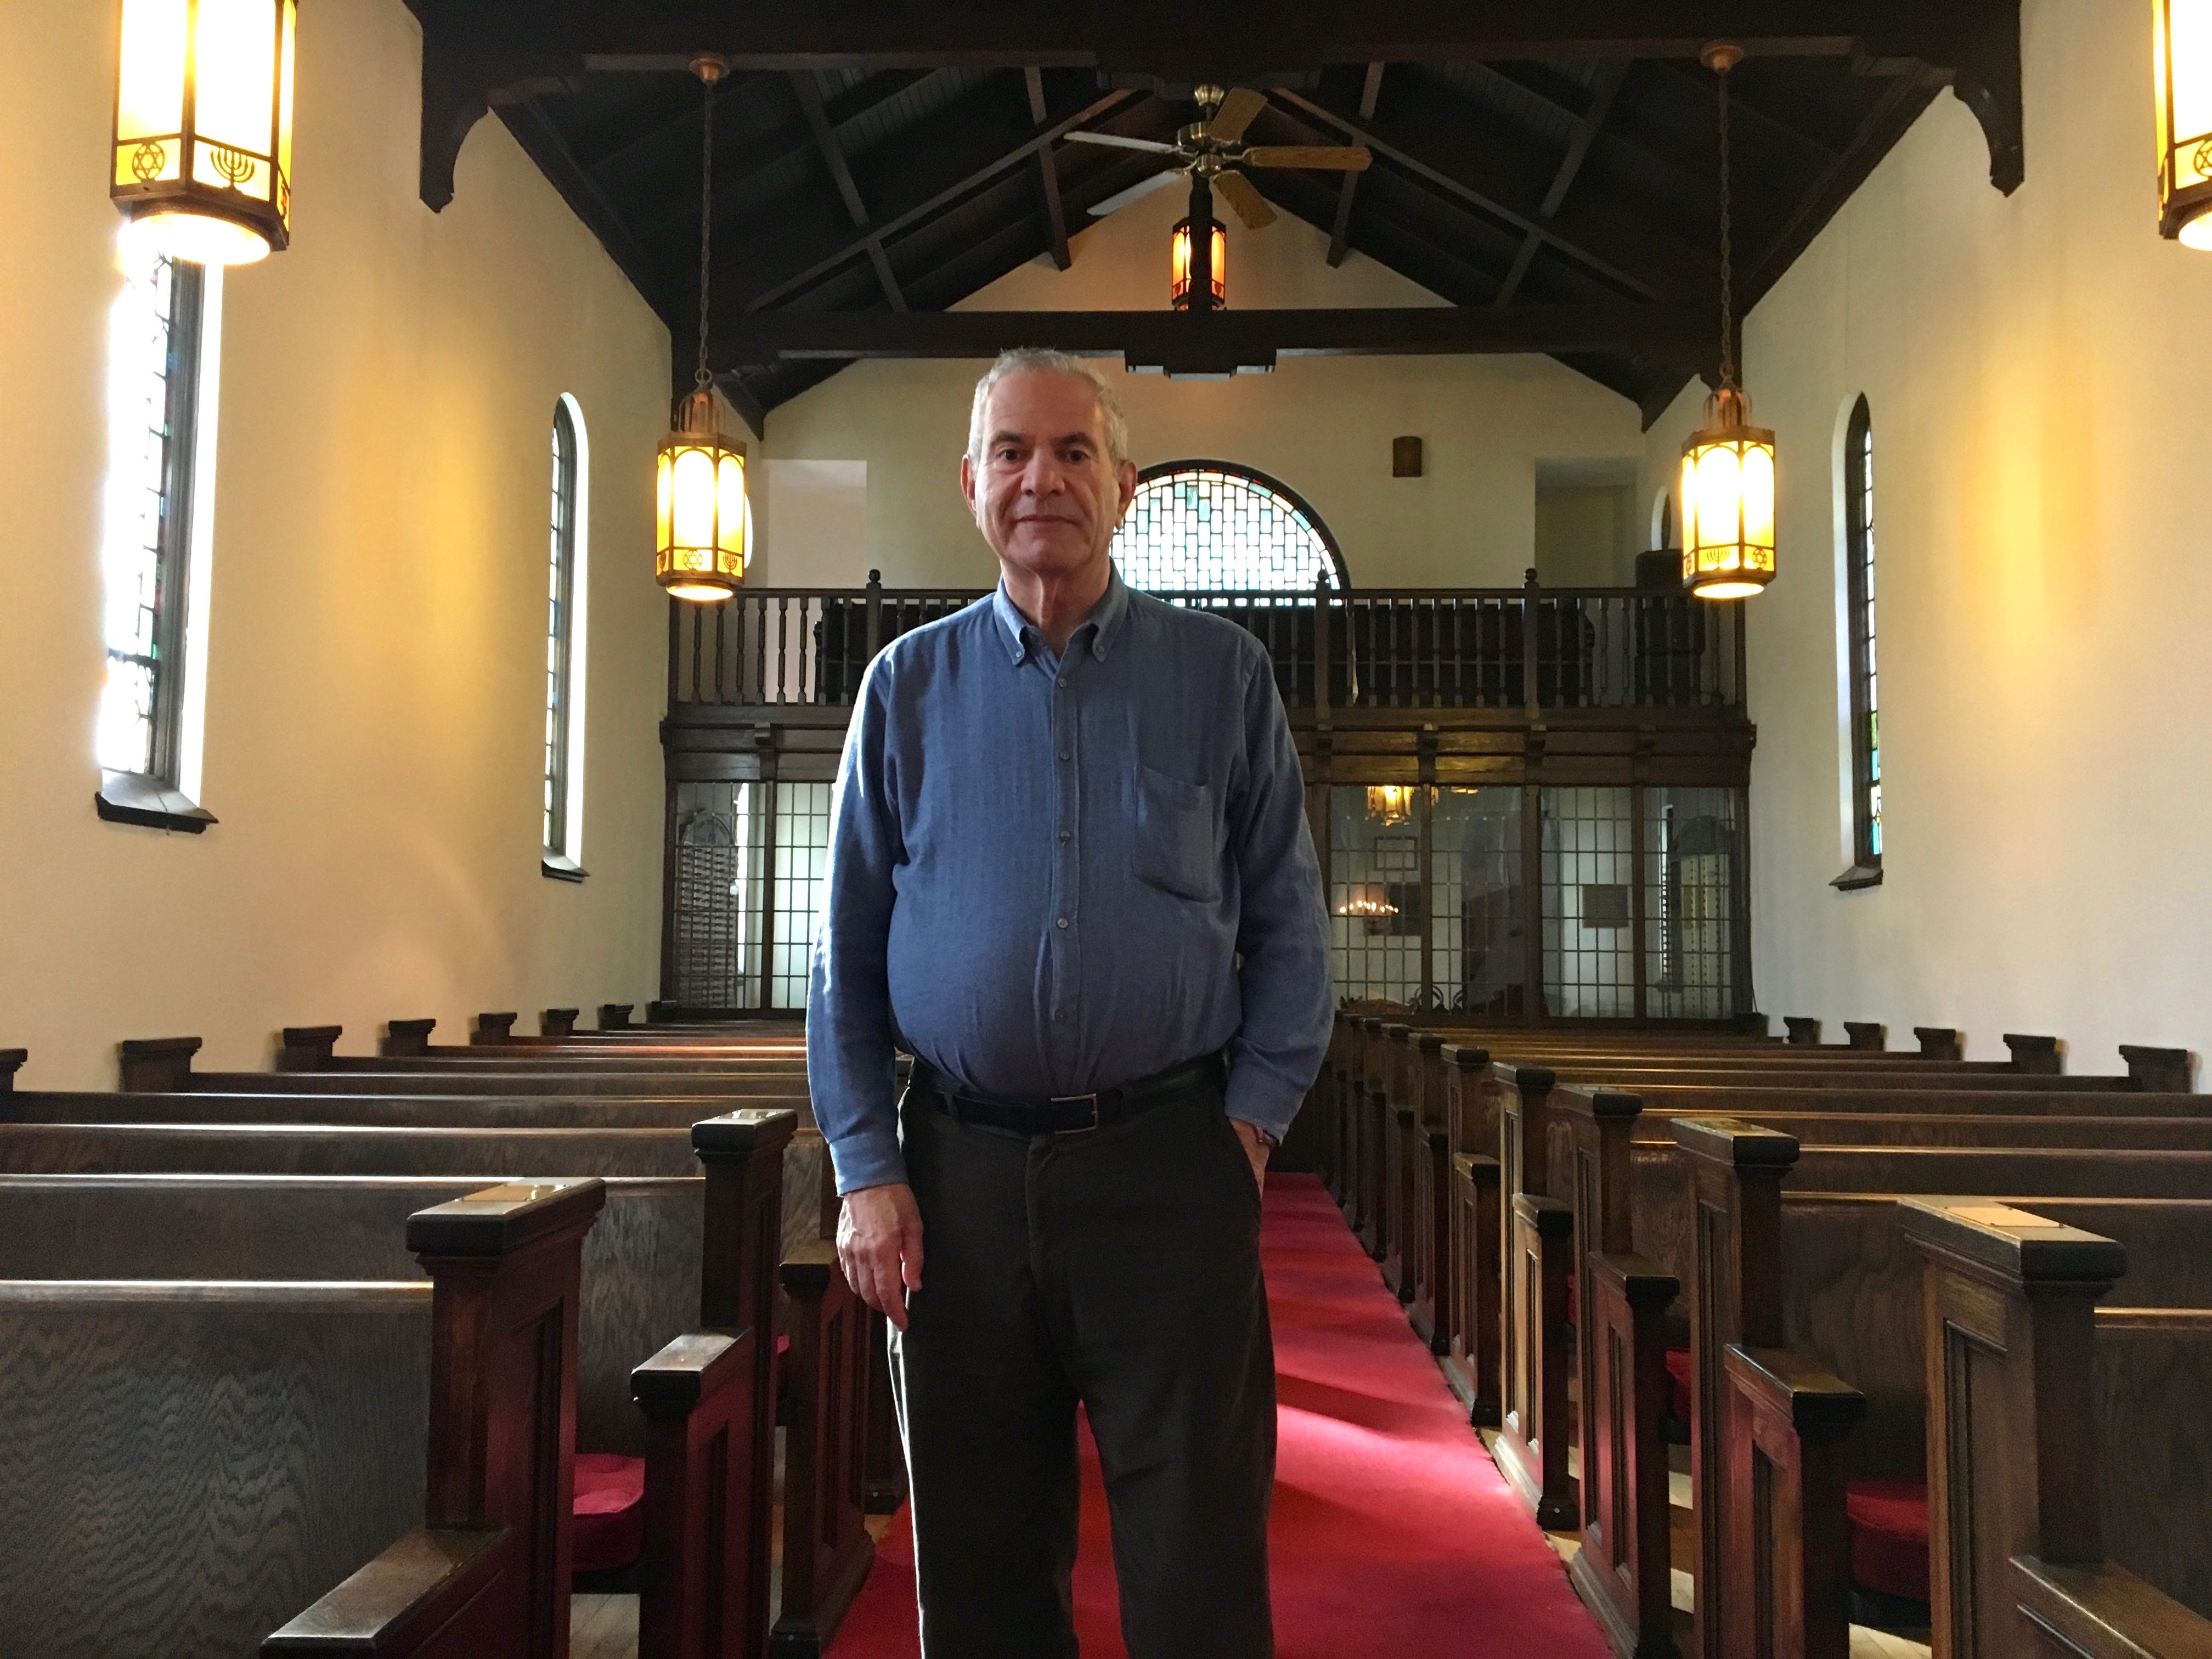 """Rabbi Peter Grumbacher sits inside the sanctuary at Temple House of Israel in Staunton on Sunday, October 28, 2018, the day after the deadliest attack against the Jewish community in the history of the United States. """"The time is now for the general community to take action to stop the hate."""""""